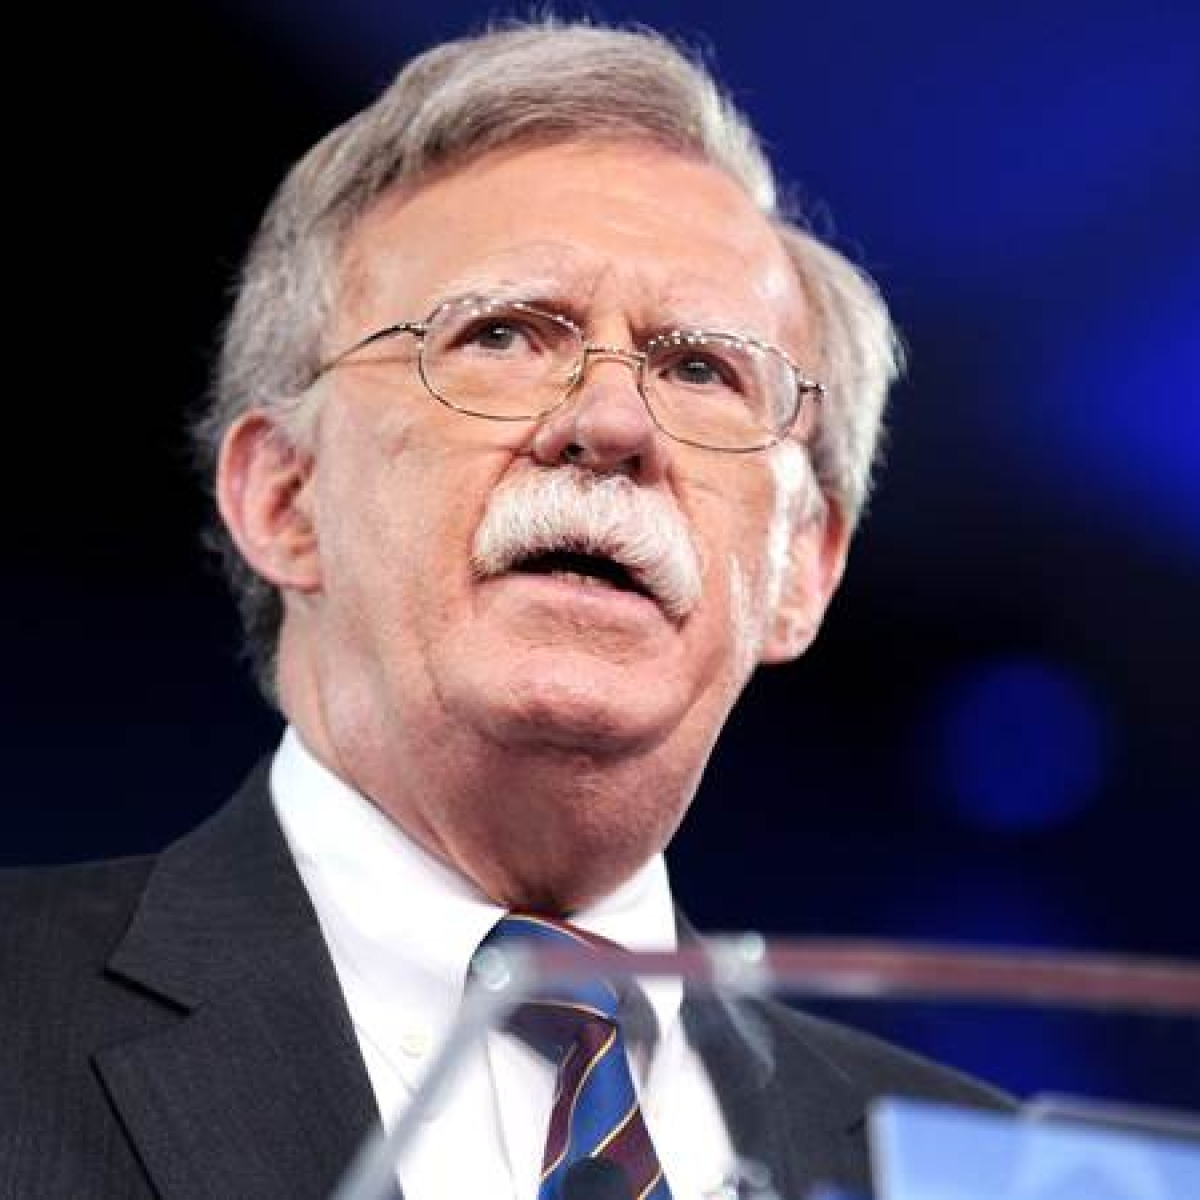 Trump ousts hawkish Bolton, reduces dissent within inner circle